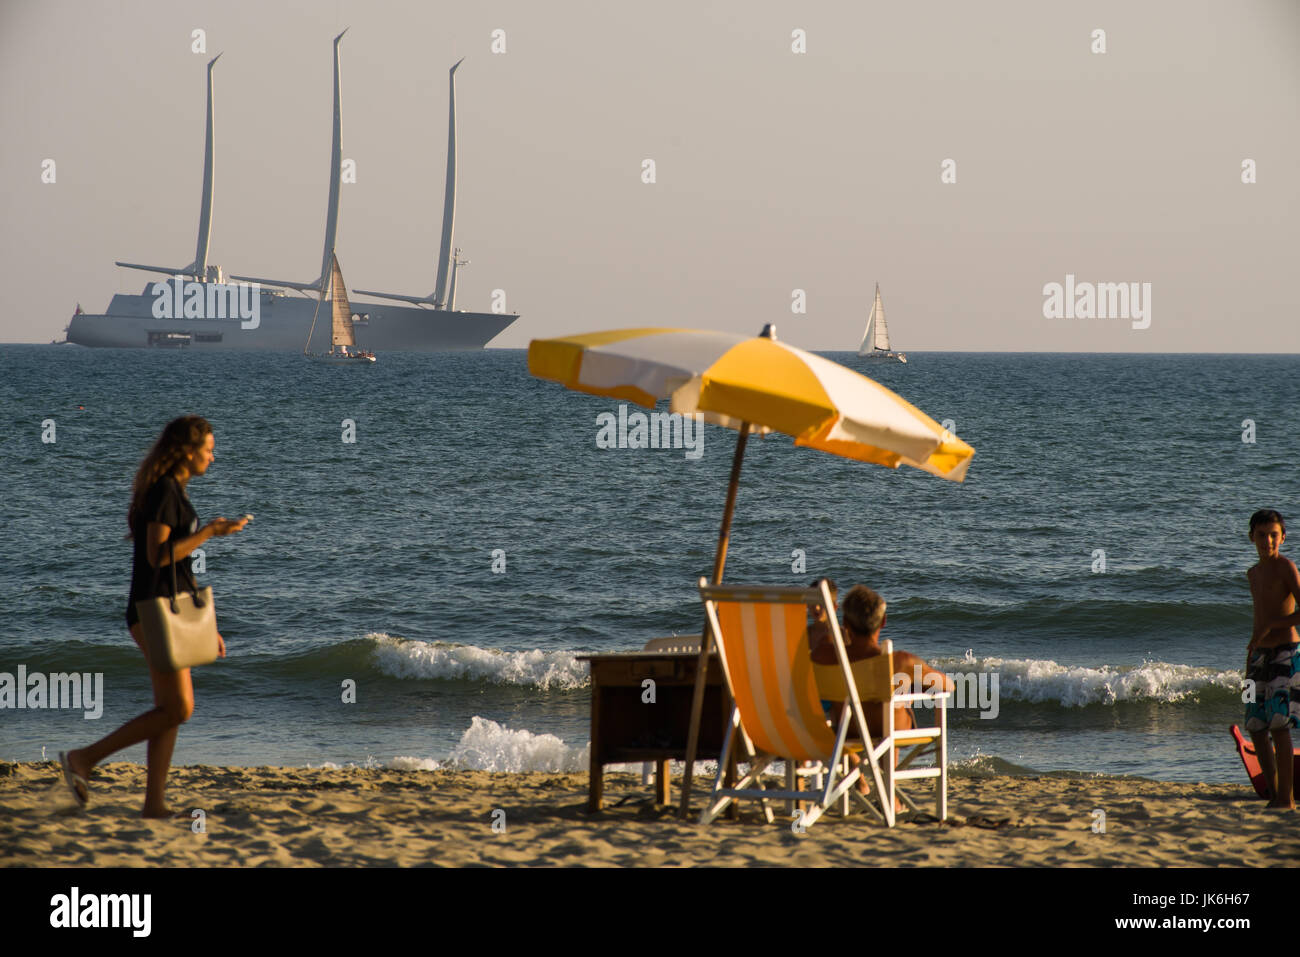 Lido Di Camaiore, Italy. 22nd July, 2017. Yacht A, owned by Russian billionaire Andrey Melnichenko, is anchored - Stock Image